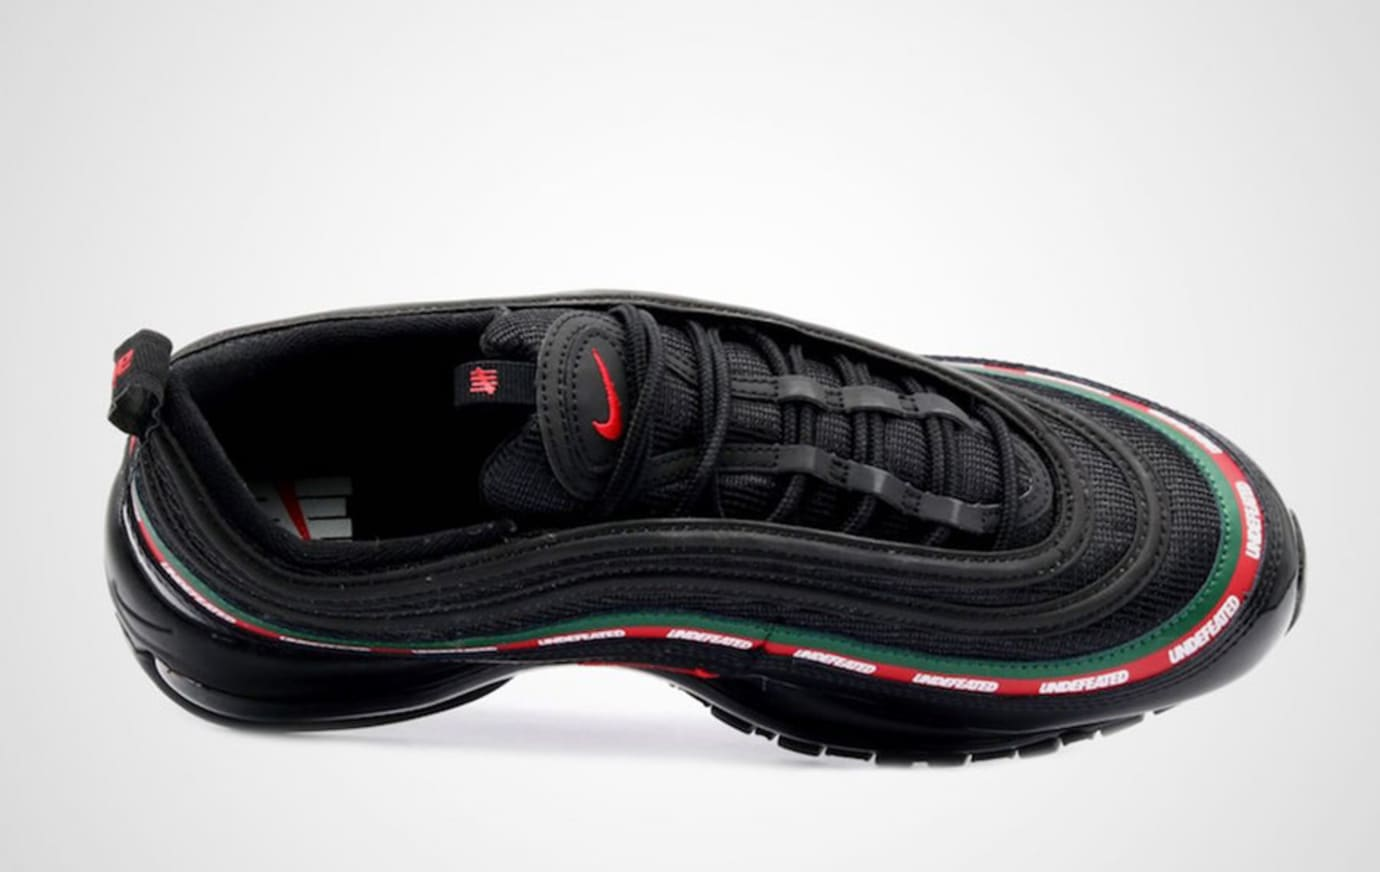 Undefeated Nike Air Max 97 AJ1986-001 Top